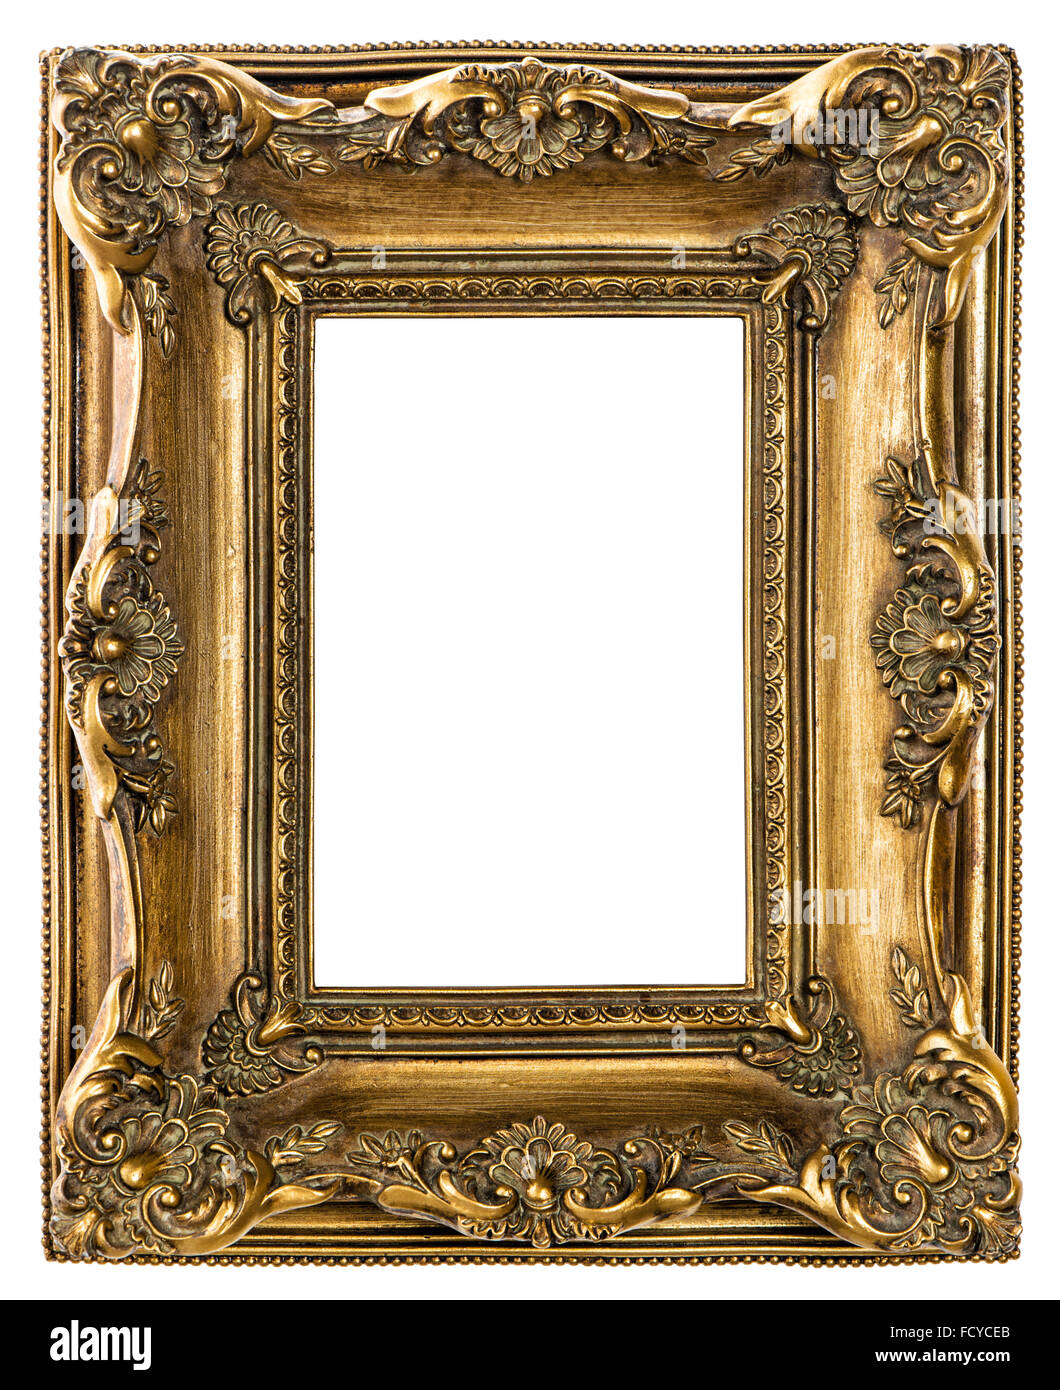 Baroque Picture Frame Stock Photos & Baroque Picture Frame Stock ...